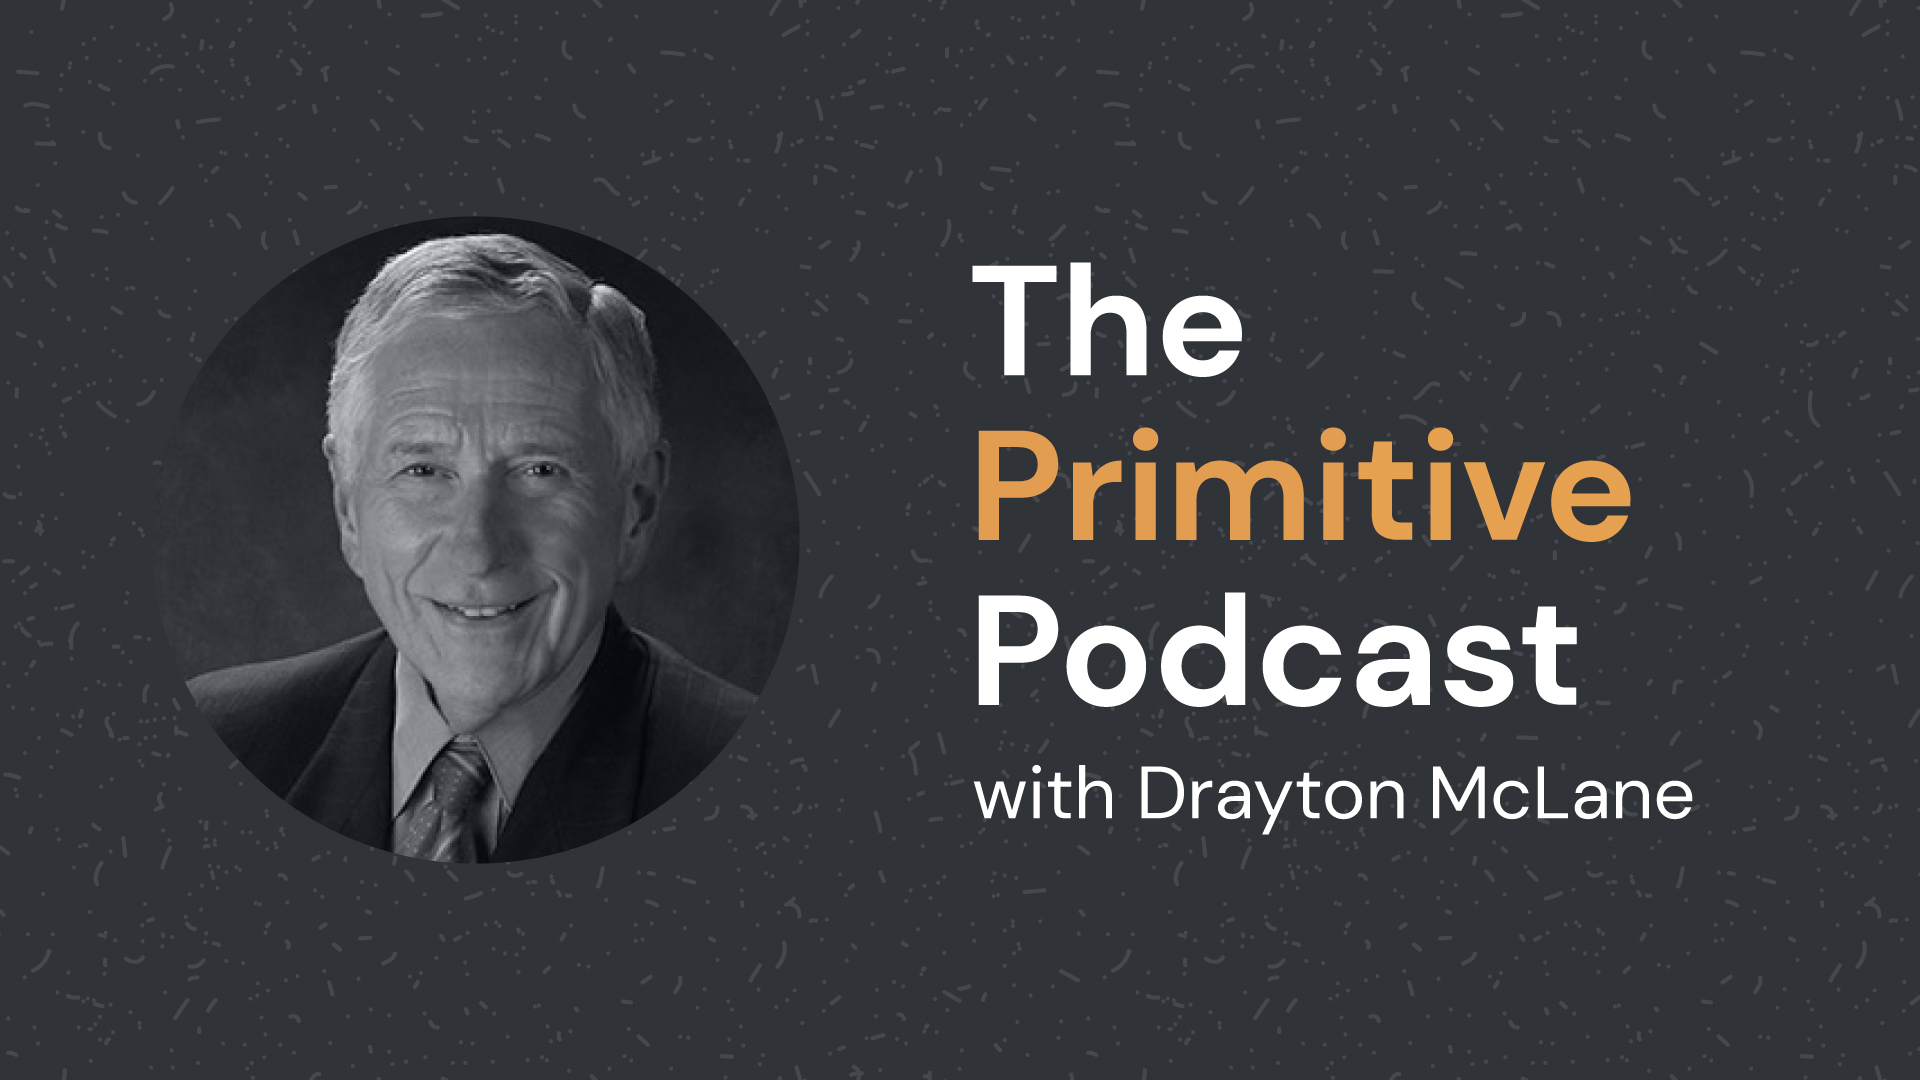 The Primitive Podcast with Drayton McLane